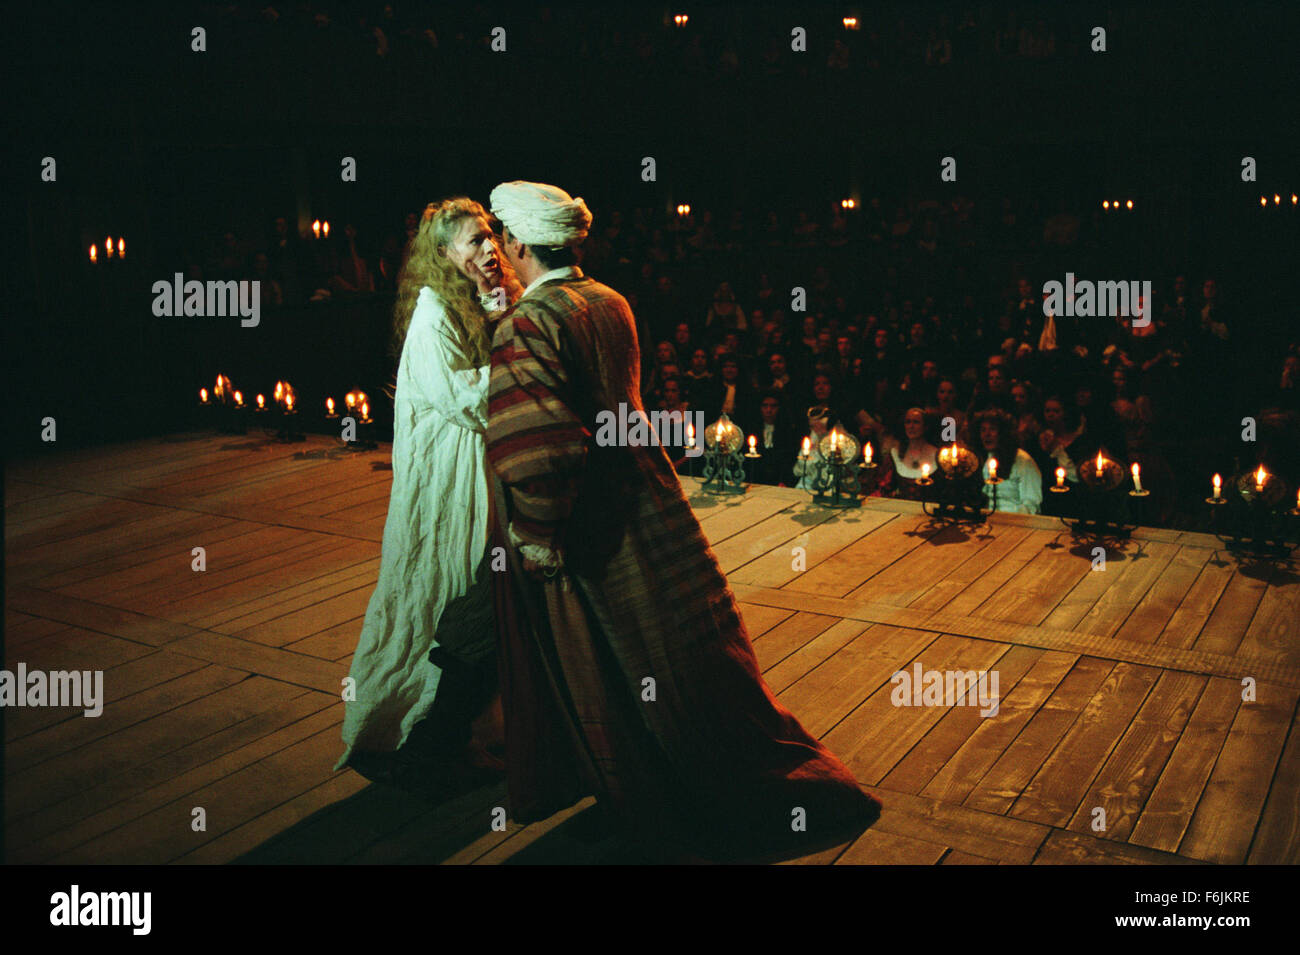 women in othello film review Using a concept devised by lead actor patrick stewart, the radical interpretation of othello at washington's shakespeare theatre flips the racial makeup of the cast, posing a white othello.